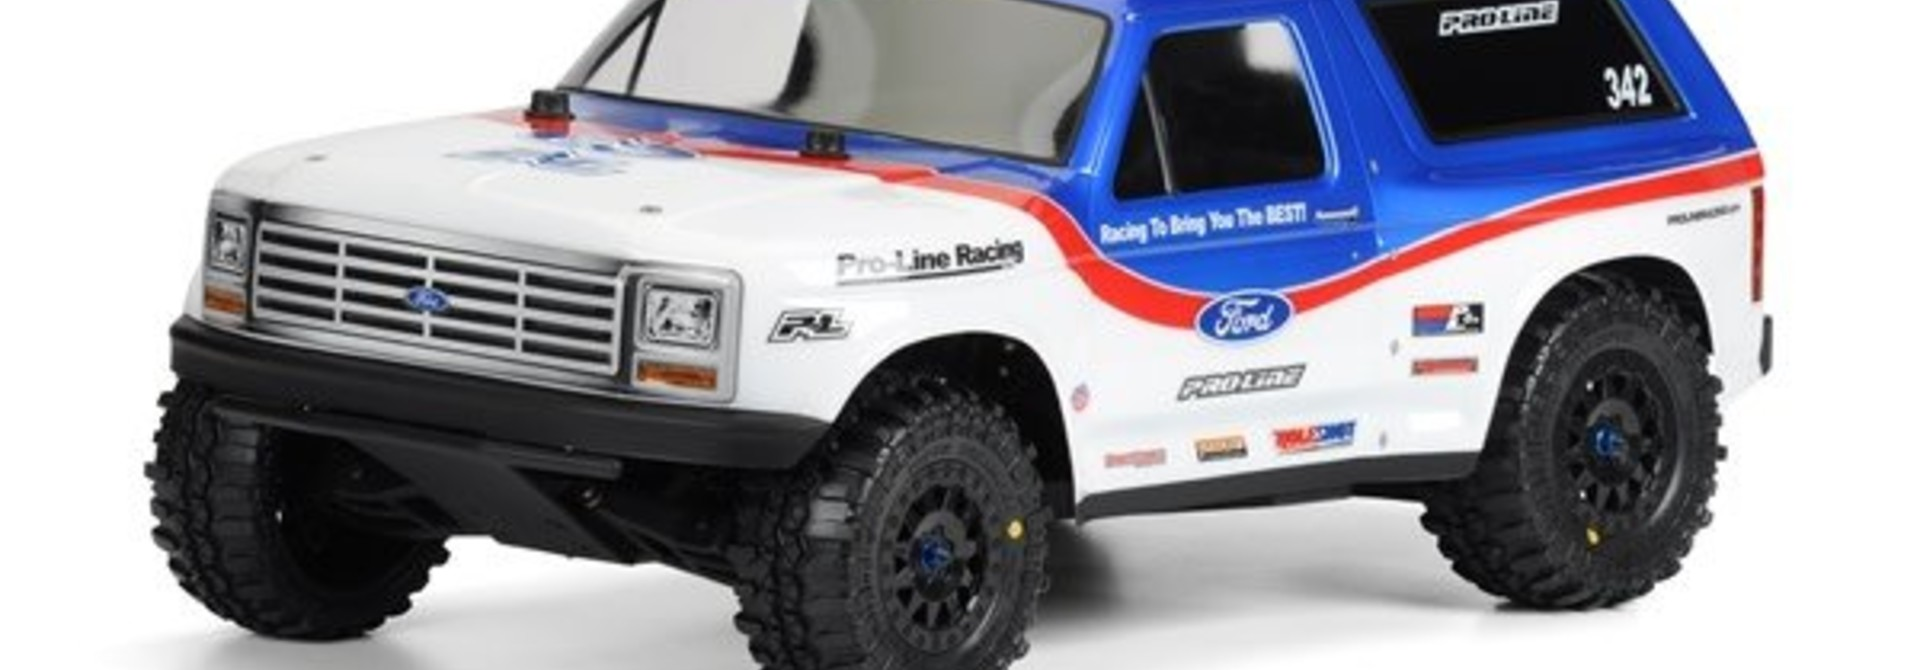 1981 Ford Bronco Clear Body for SC